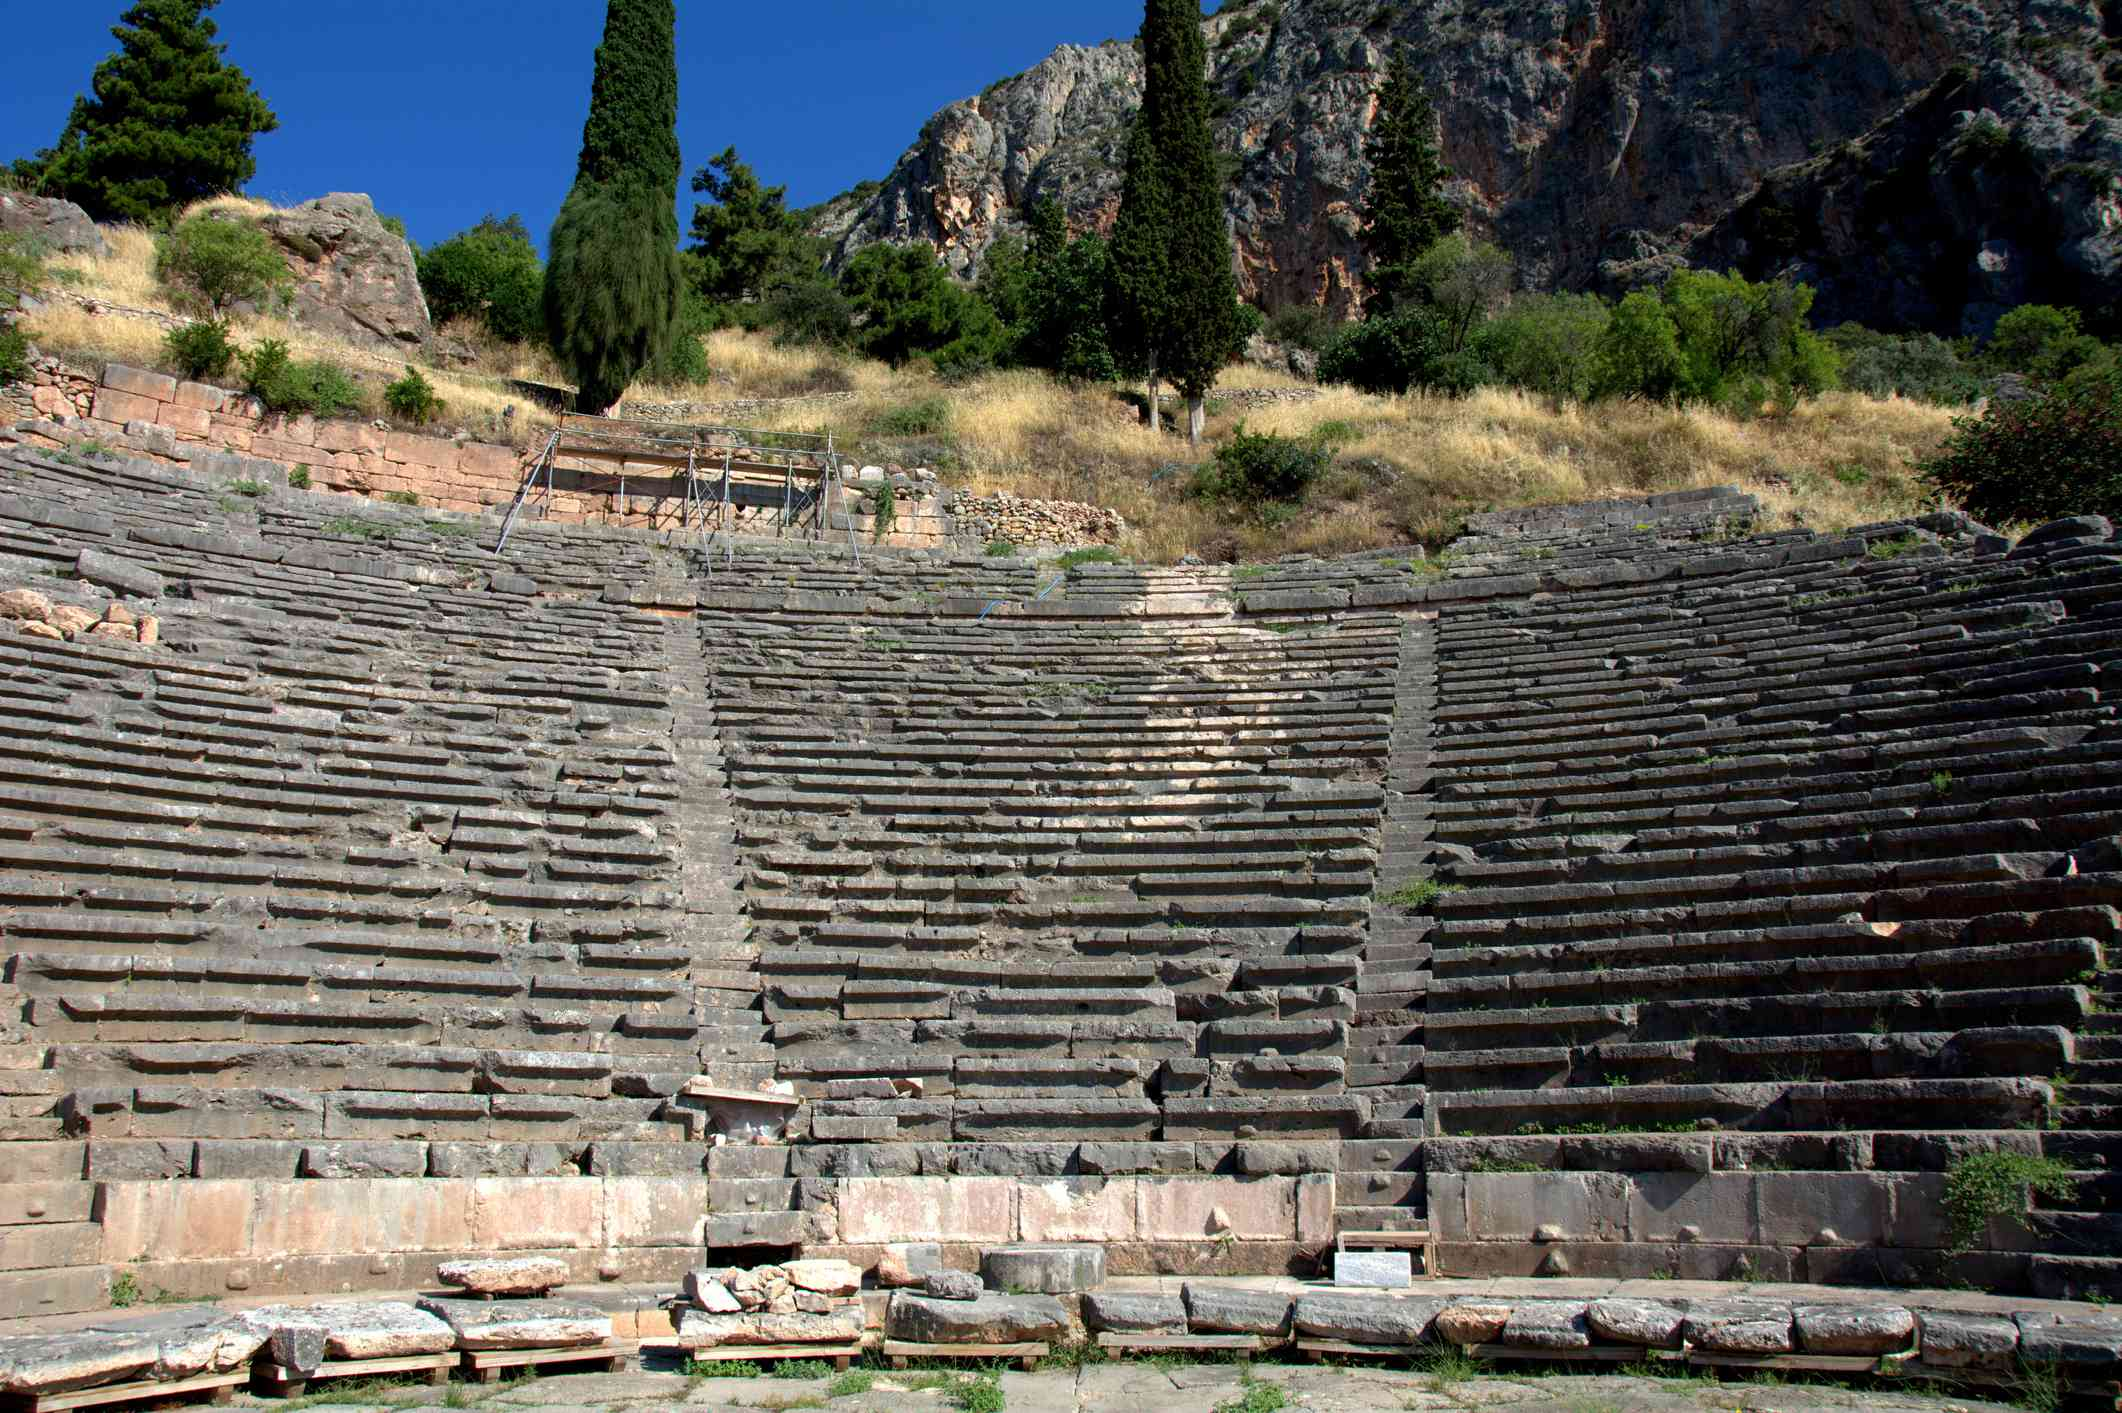 Theater of the archaeological site of Delphi